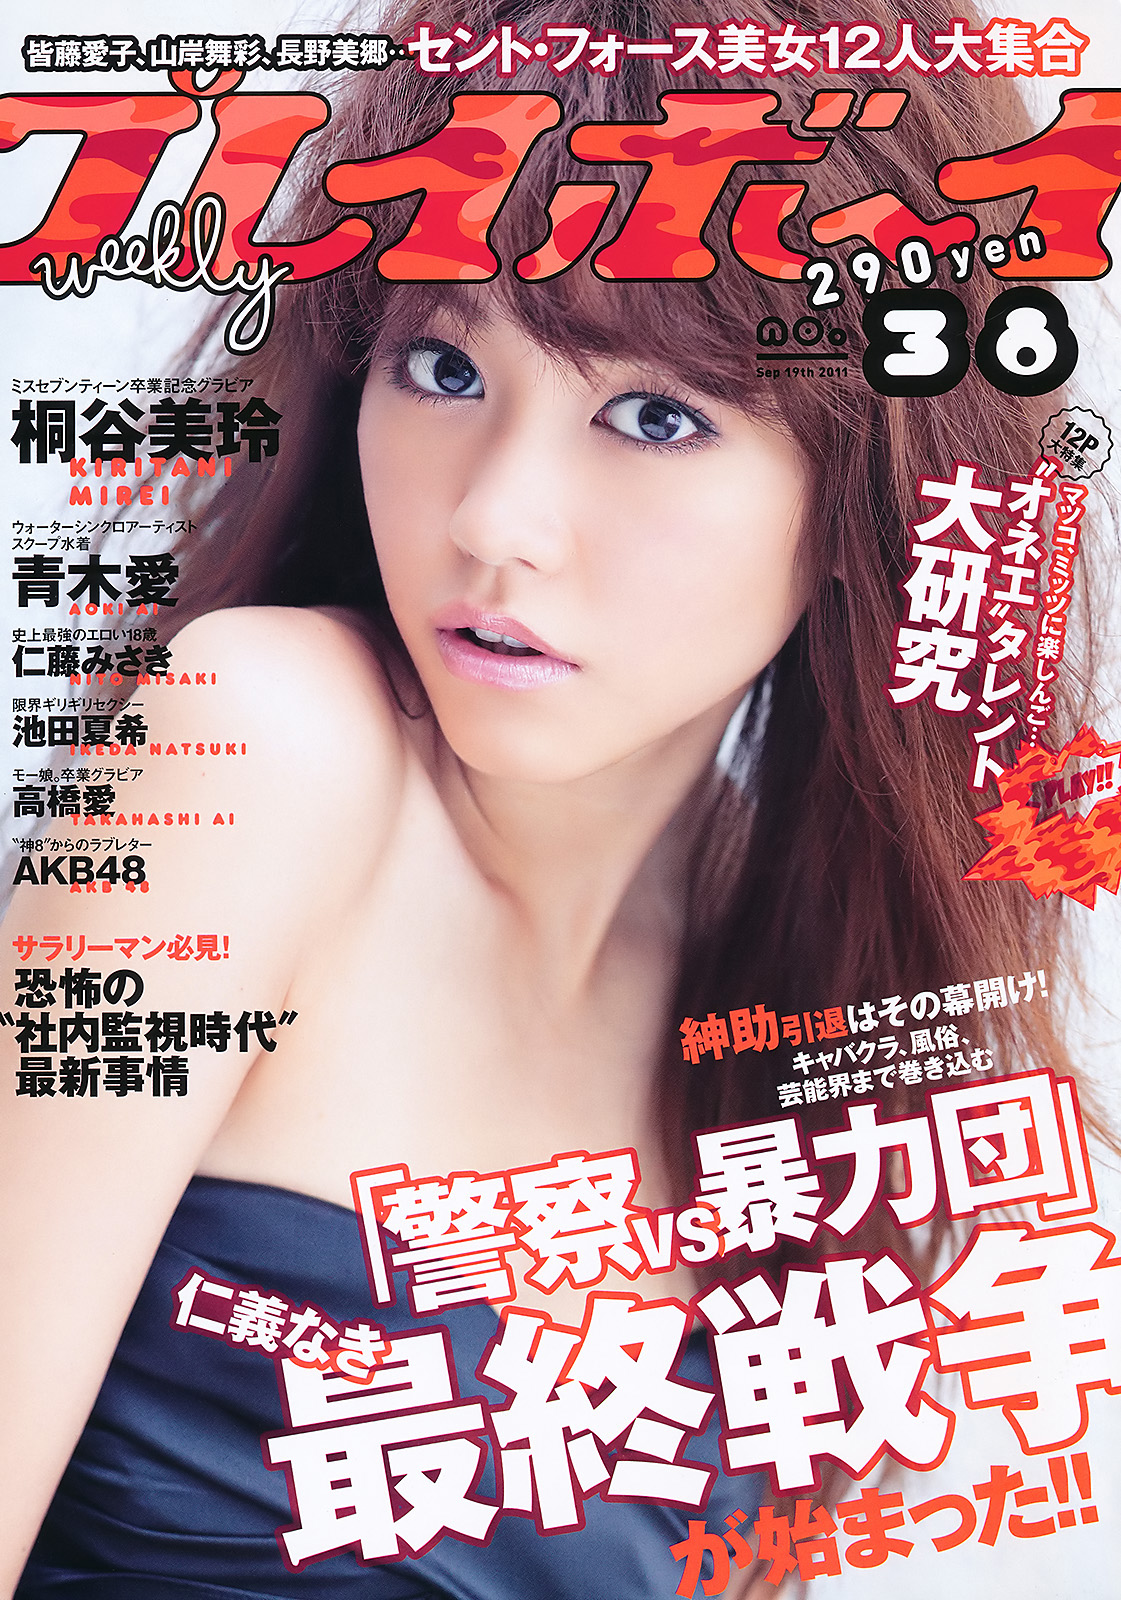 20151024.03.11 Weekly Playboy (2011.38) 001 (JPOP.ru).jpg